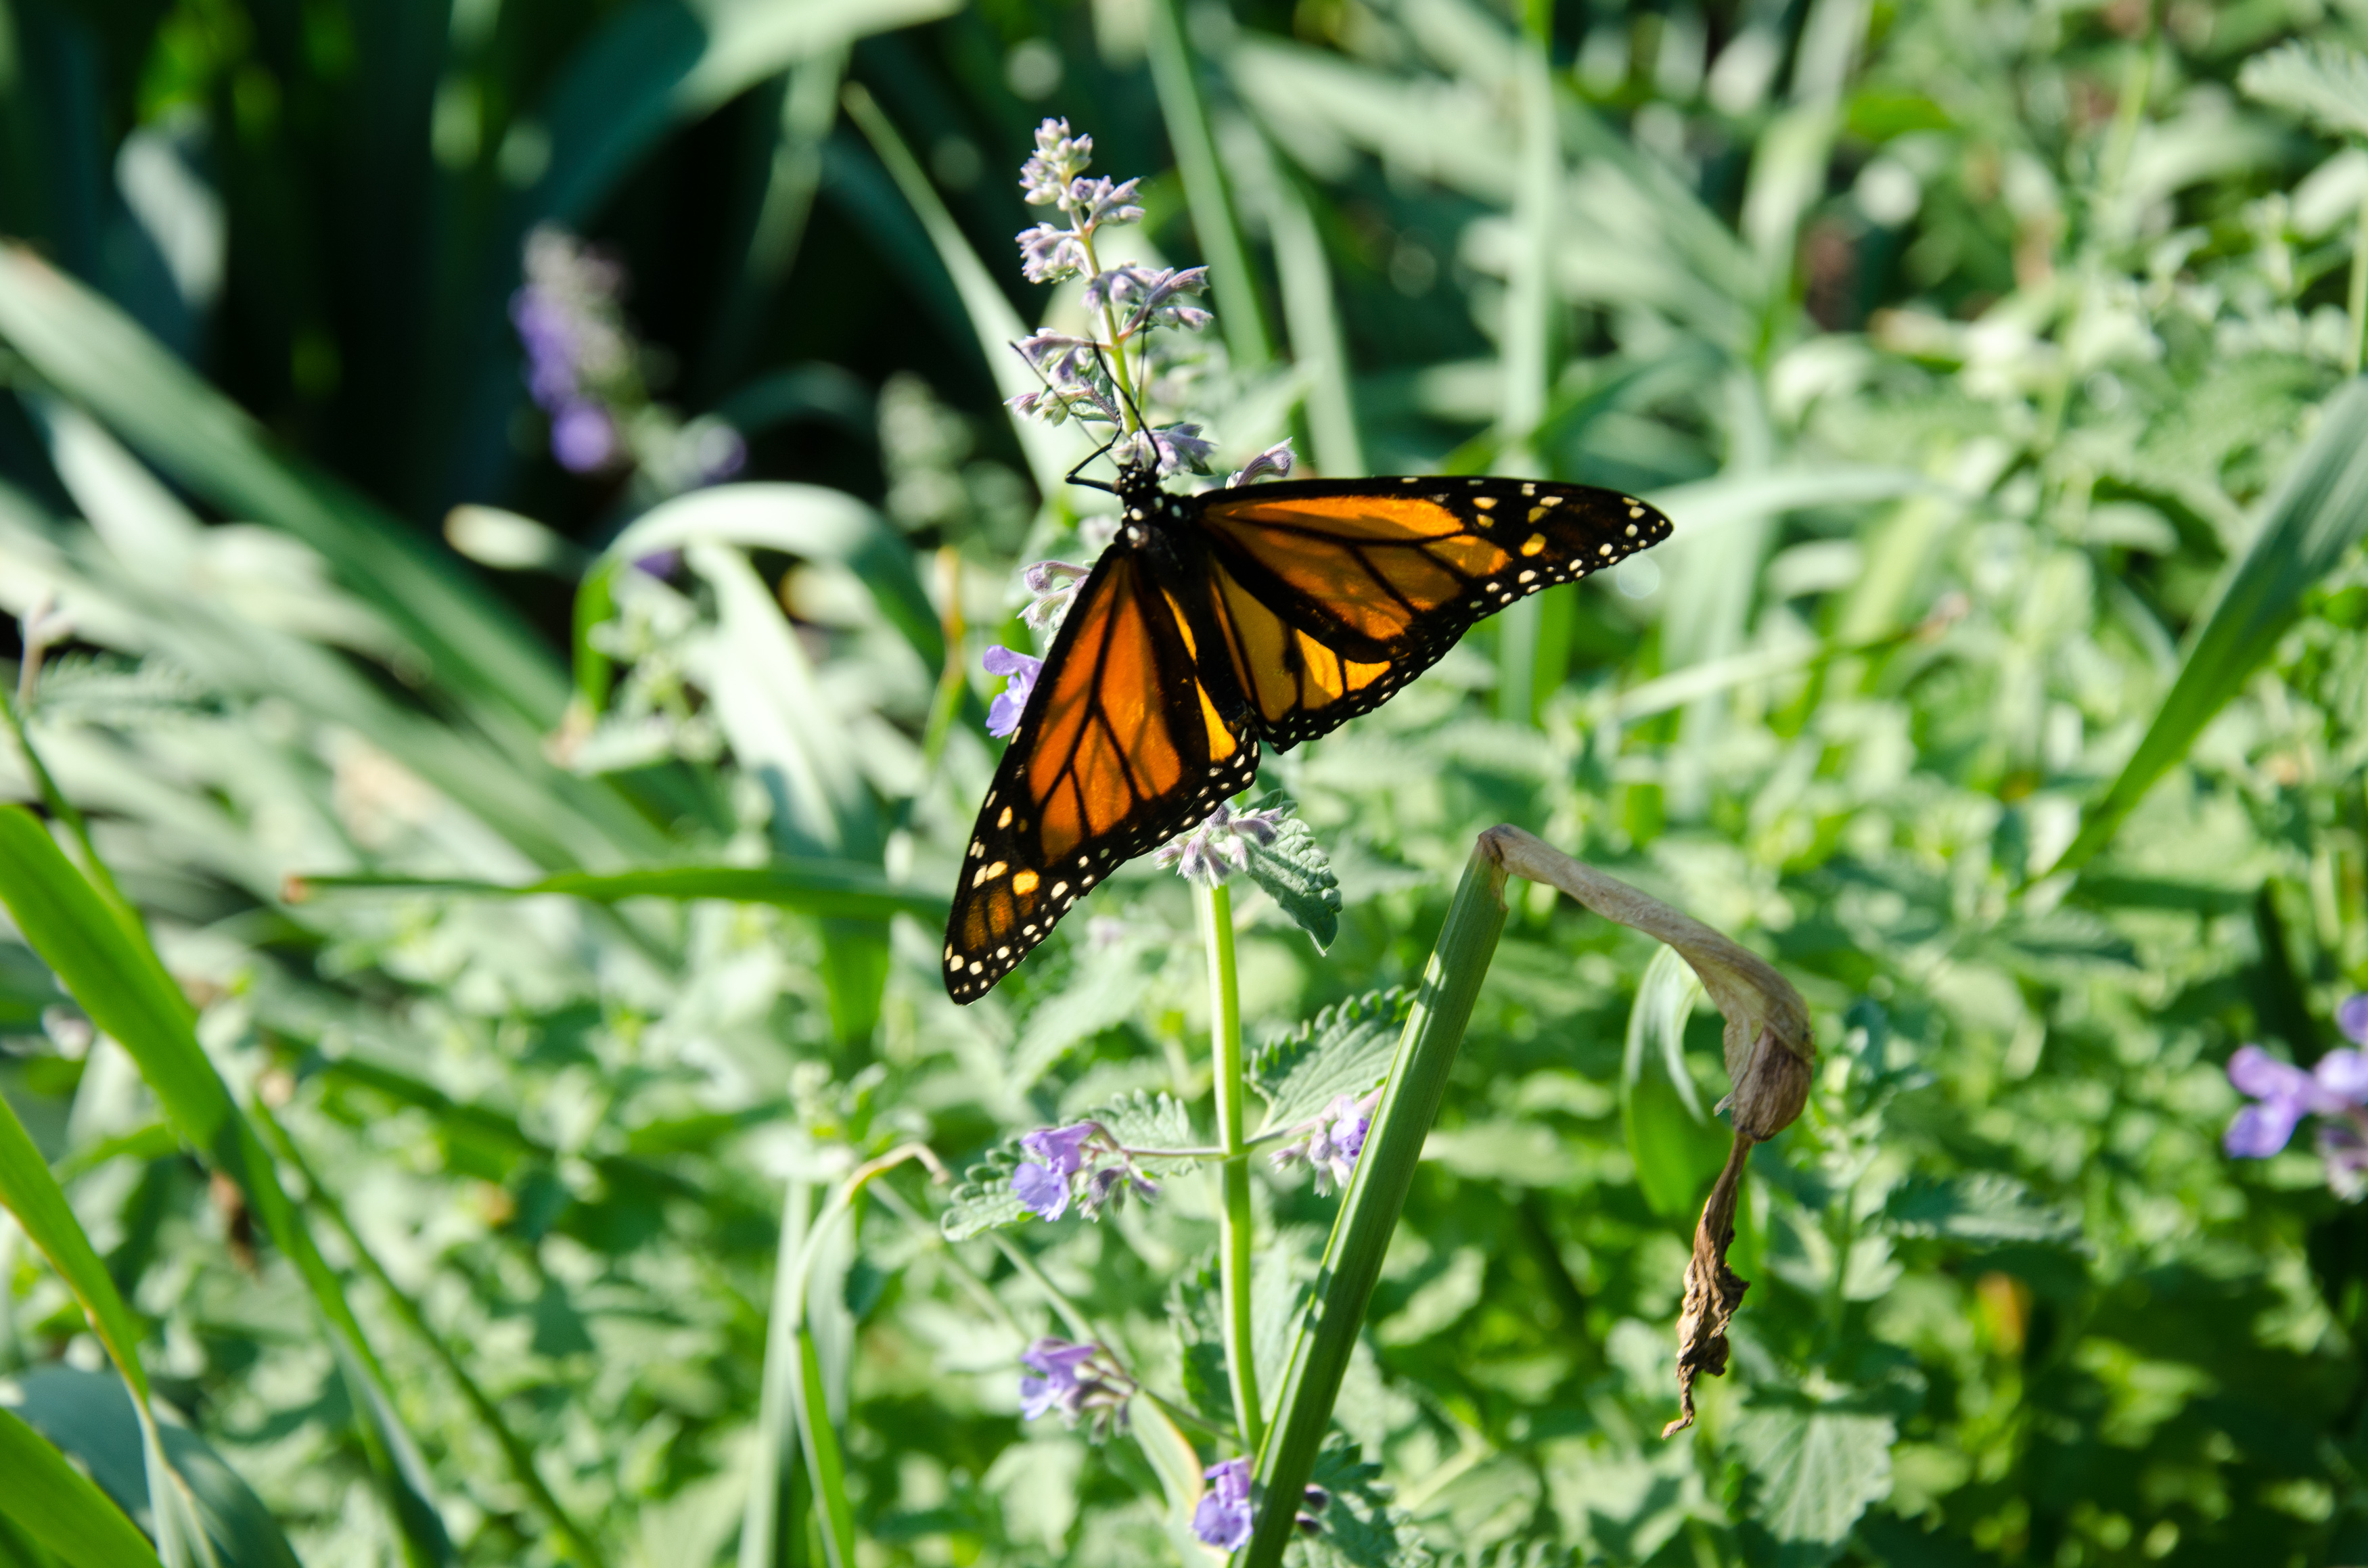 Butterflies are responsible for pollinating many wildflowers.